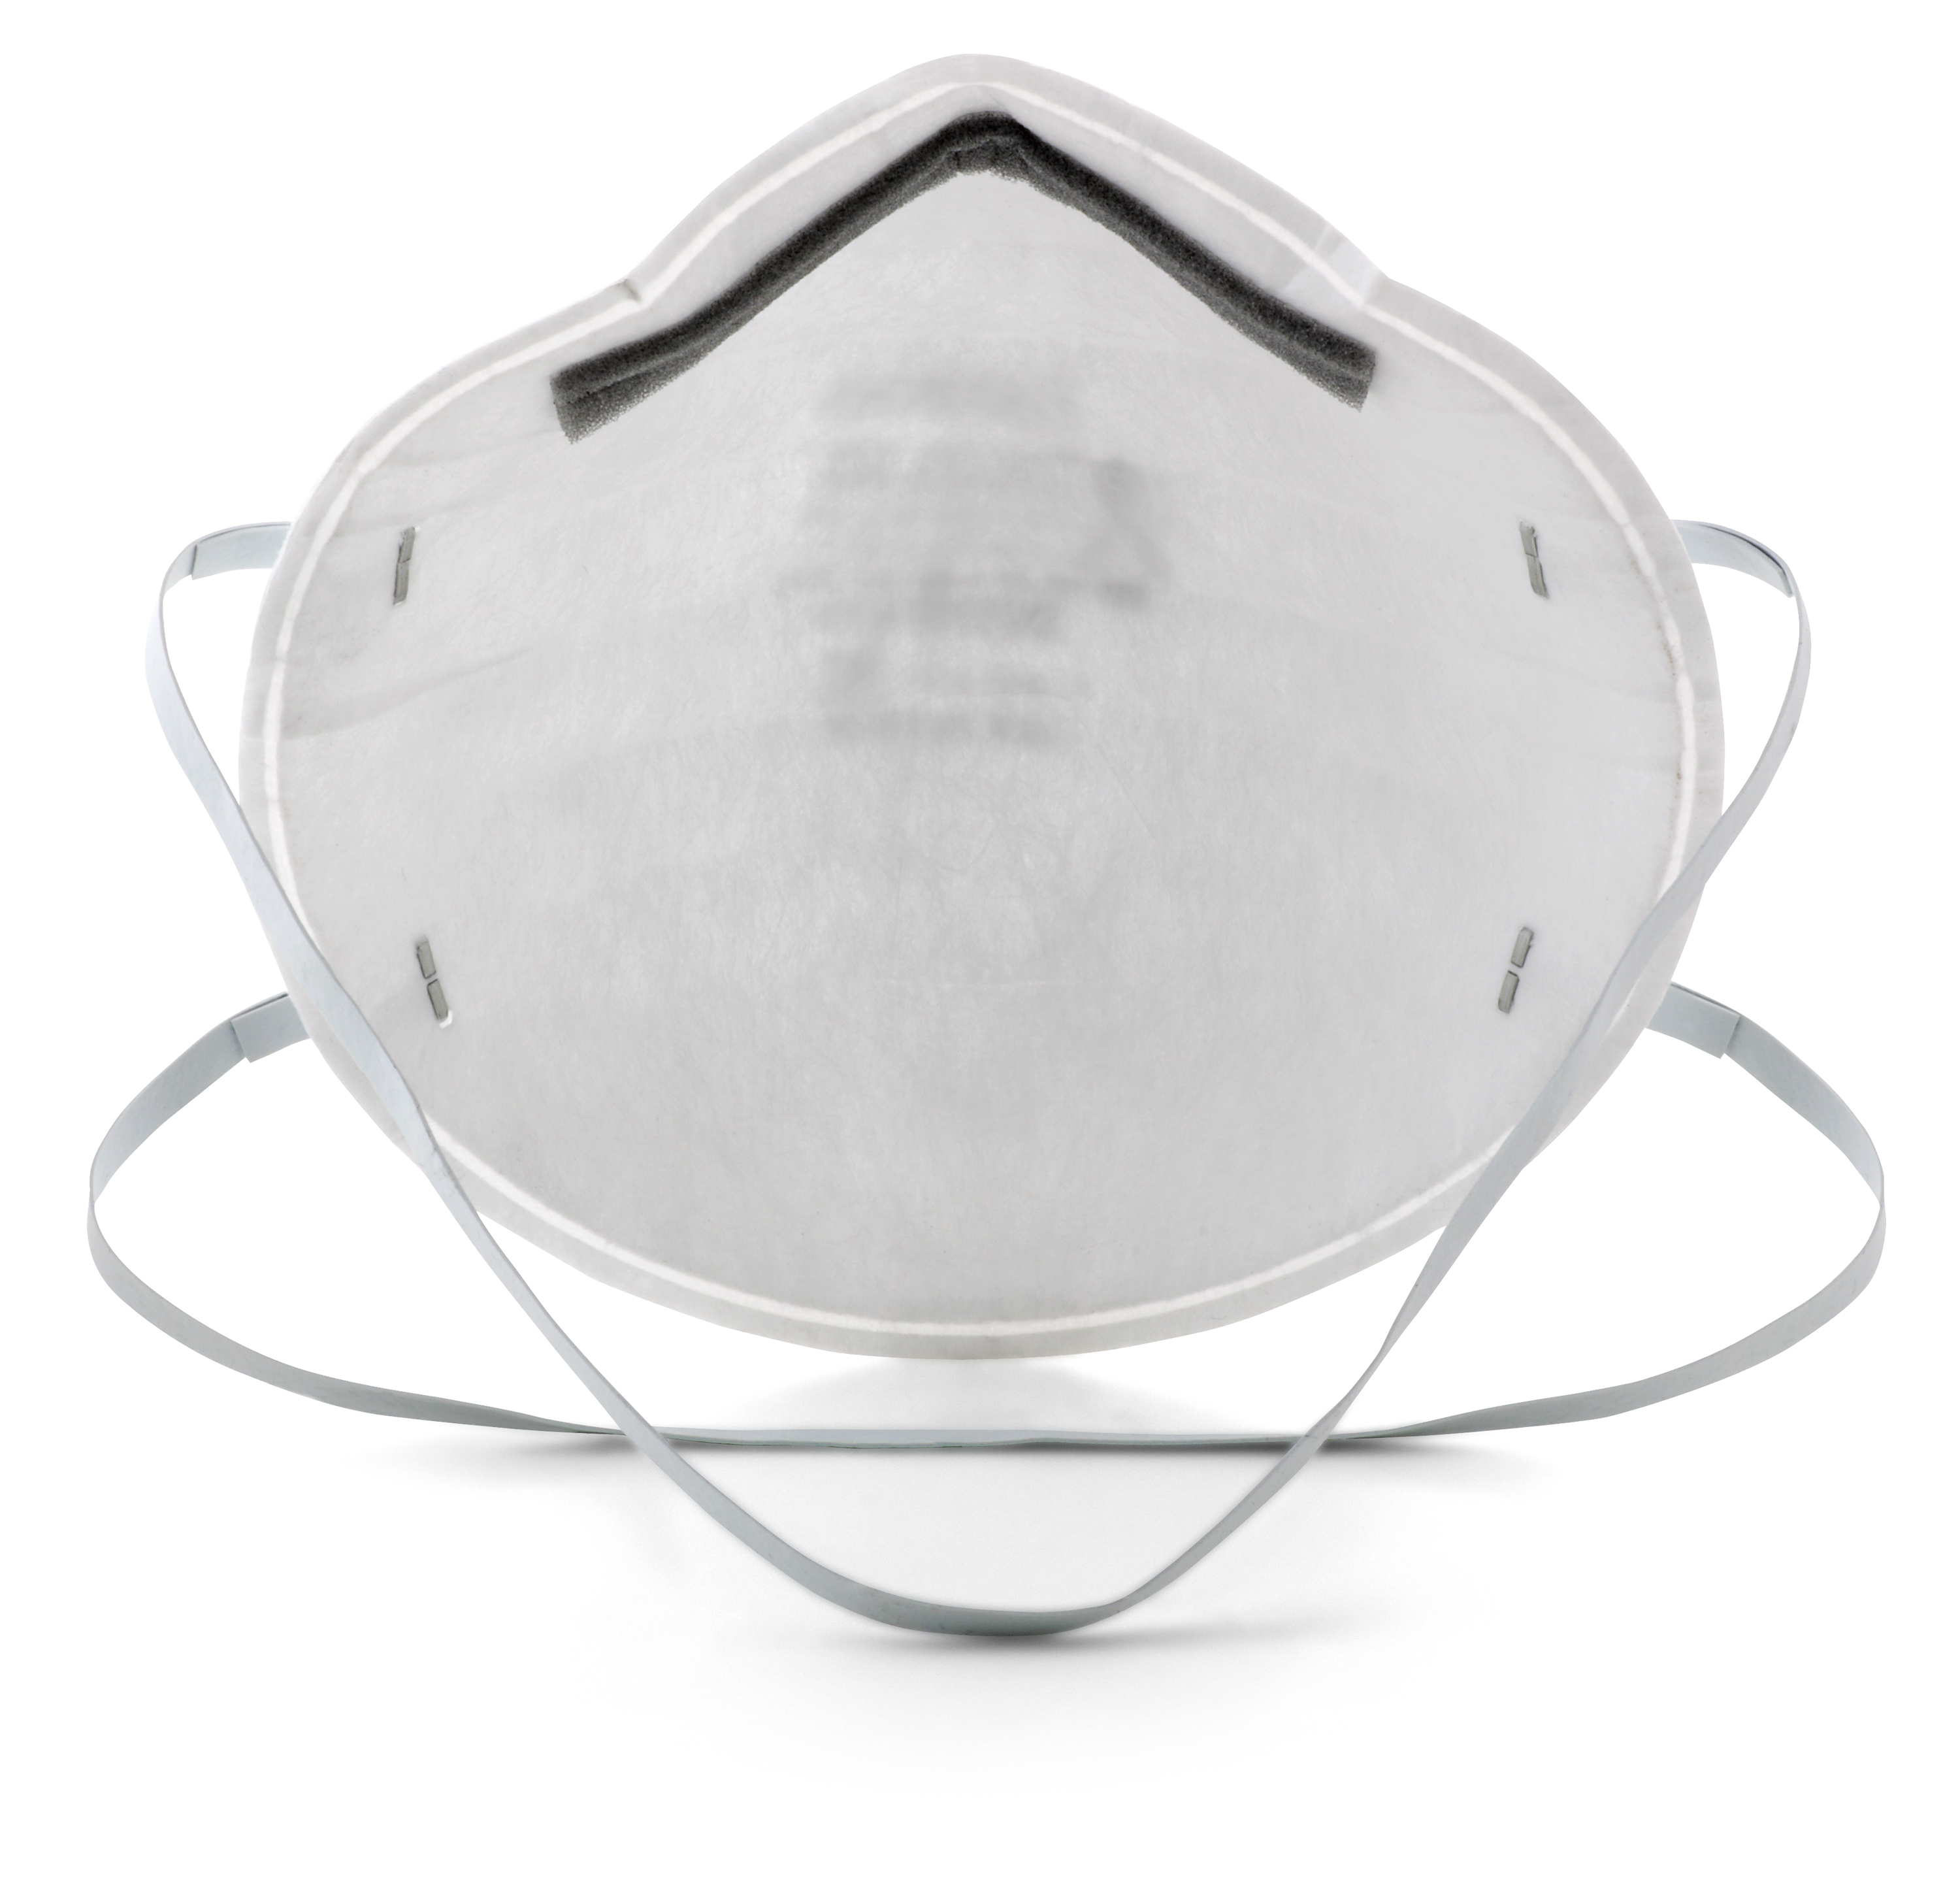 PERSONAL PROTECTIVE EQUIPMENT   Respiratory Protection   3M Particle Respirator